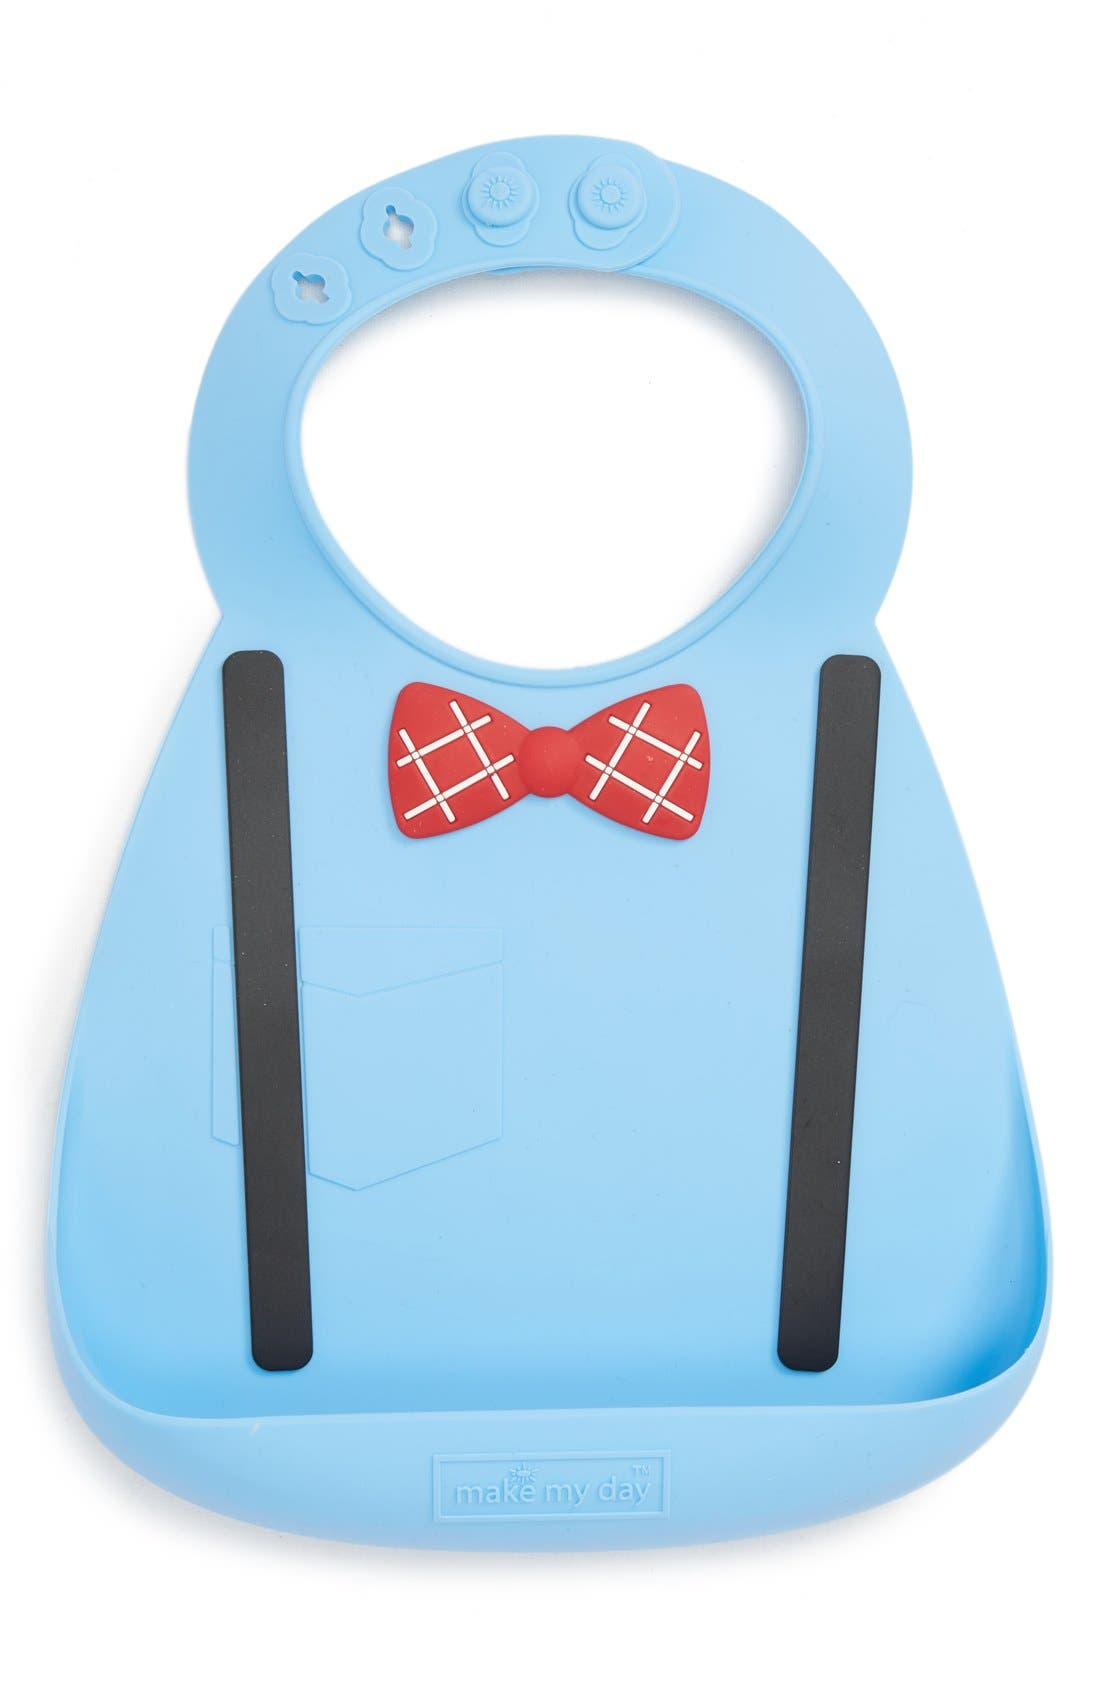 make my day 'Little Genius' Bib